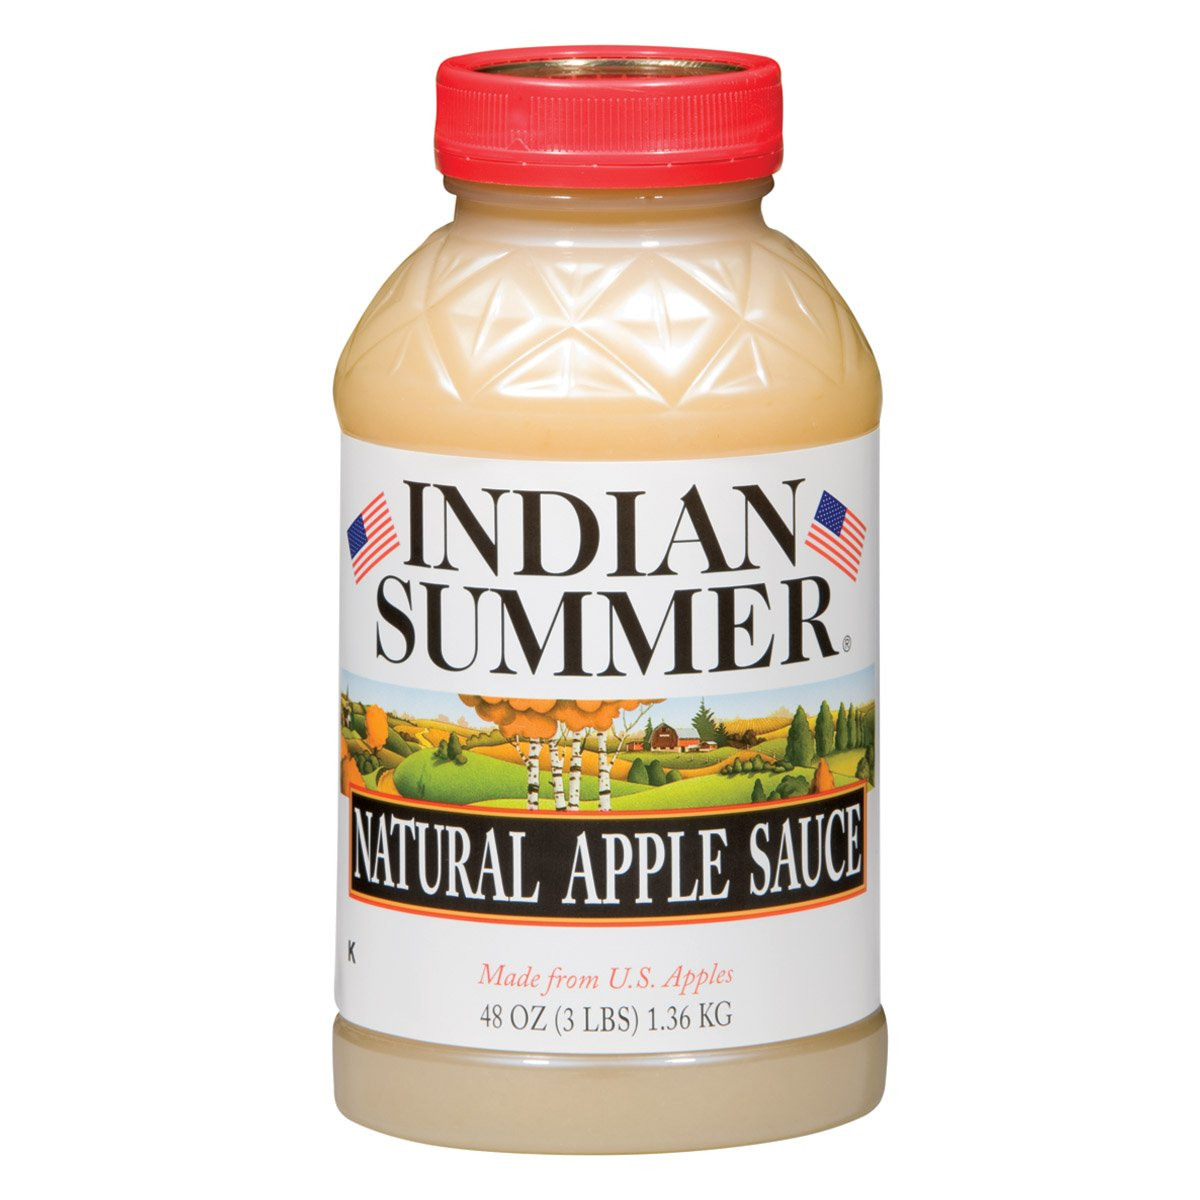 Indian Summer Apple Sauce, Natural, 48 Ounce (Pack of 8)